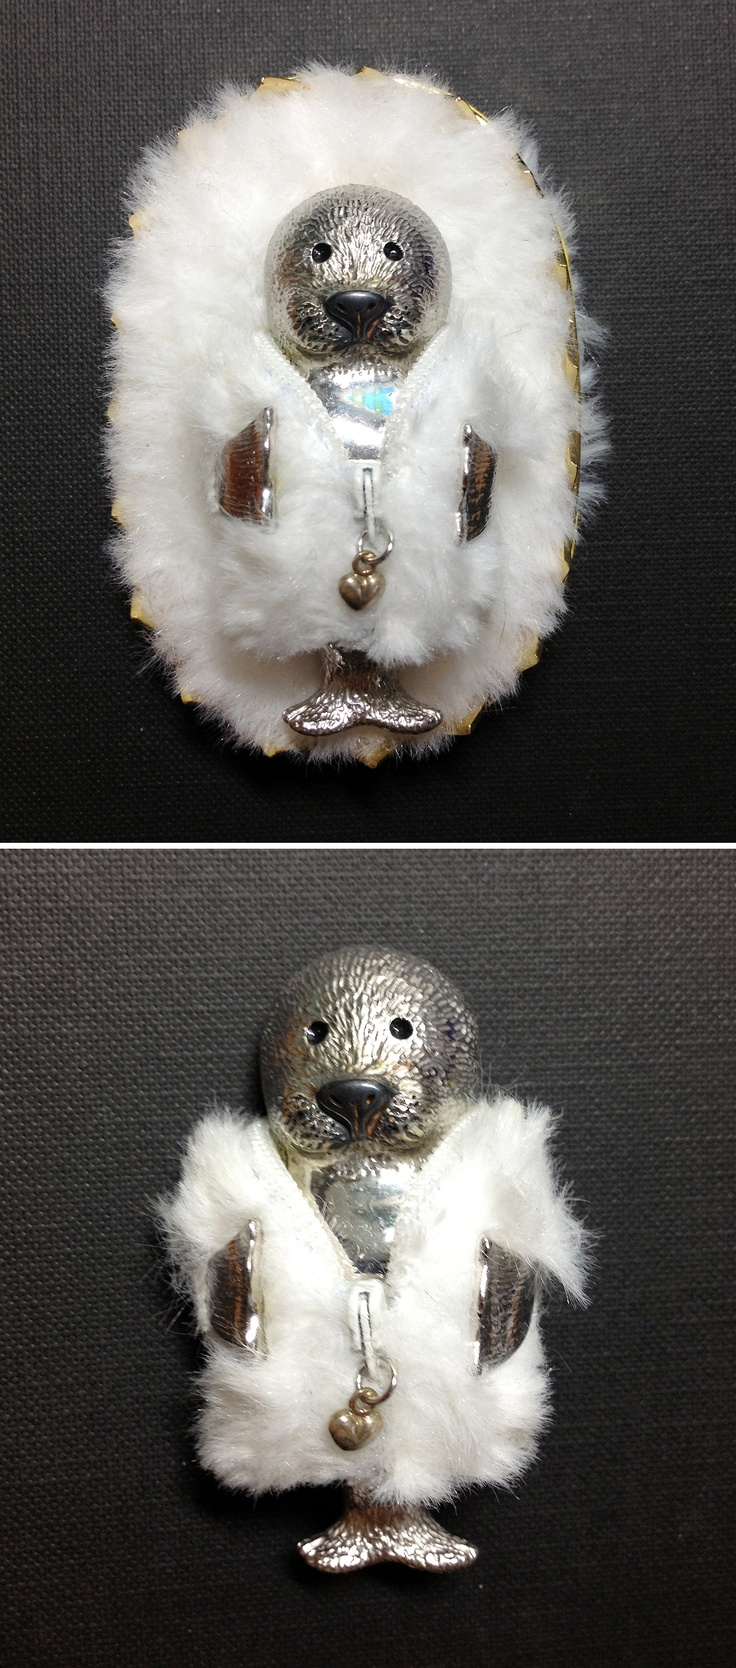 Brooch for Against Fur.   inspired by Harp seal My creative wax carving & design brooch. silver925 위기에 처한 동물들, 하프물범 이야기 왁스카빙 rescue aniaml